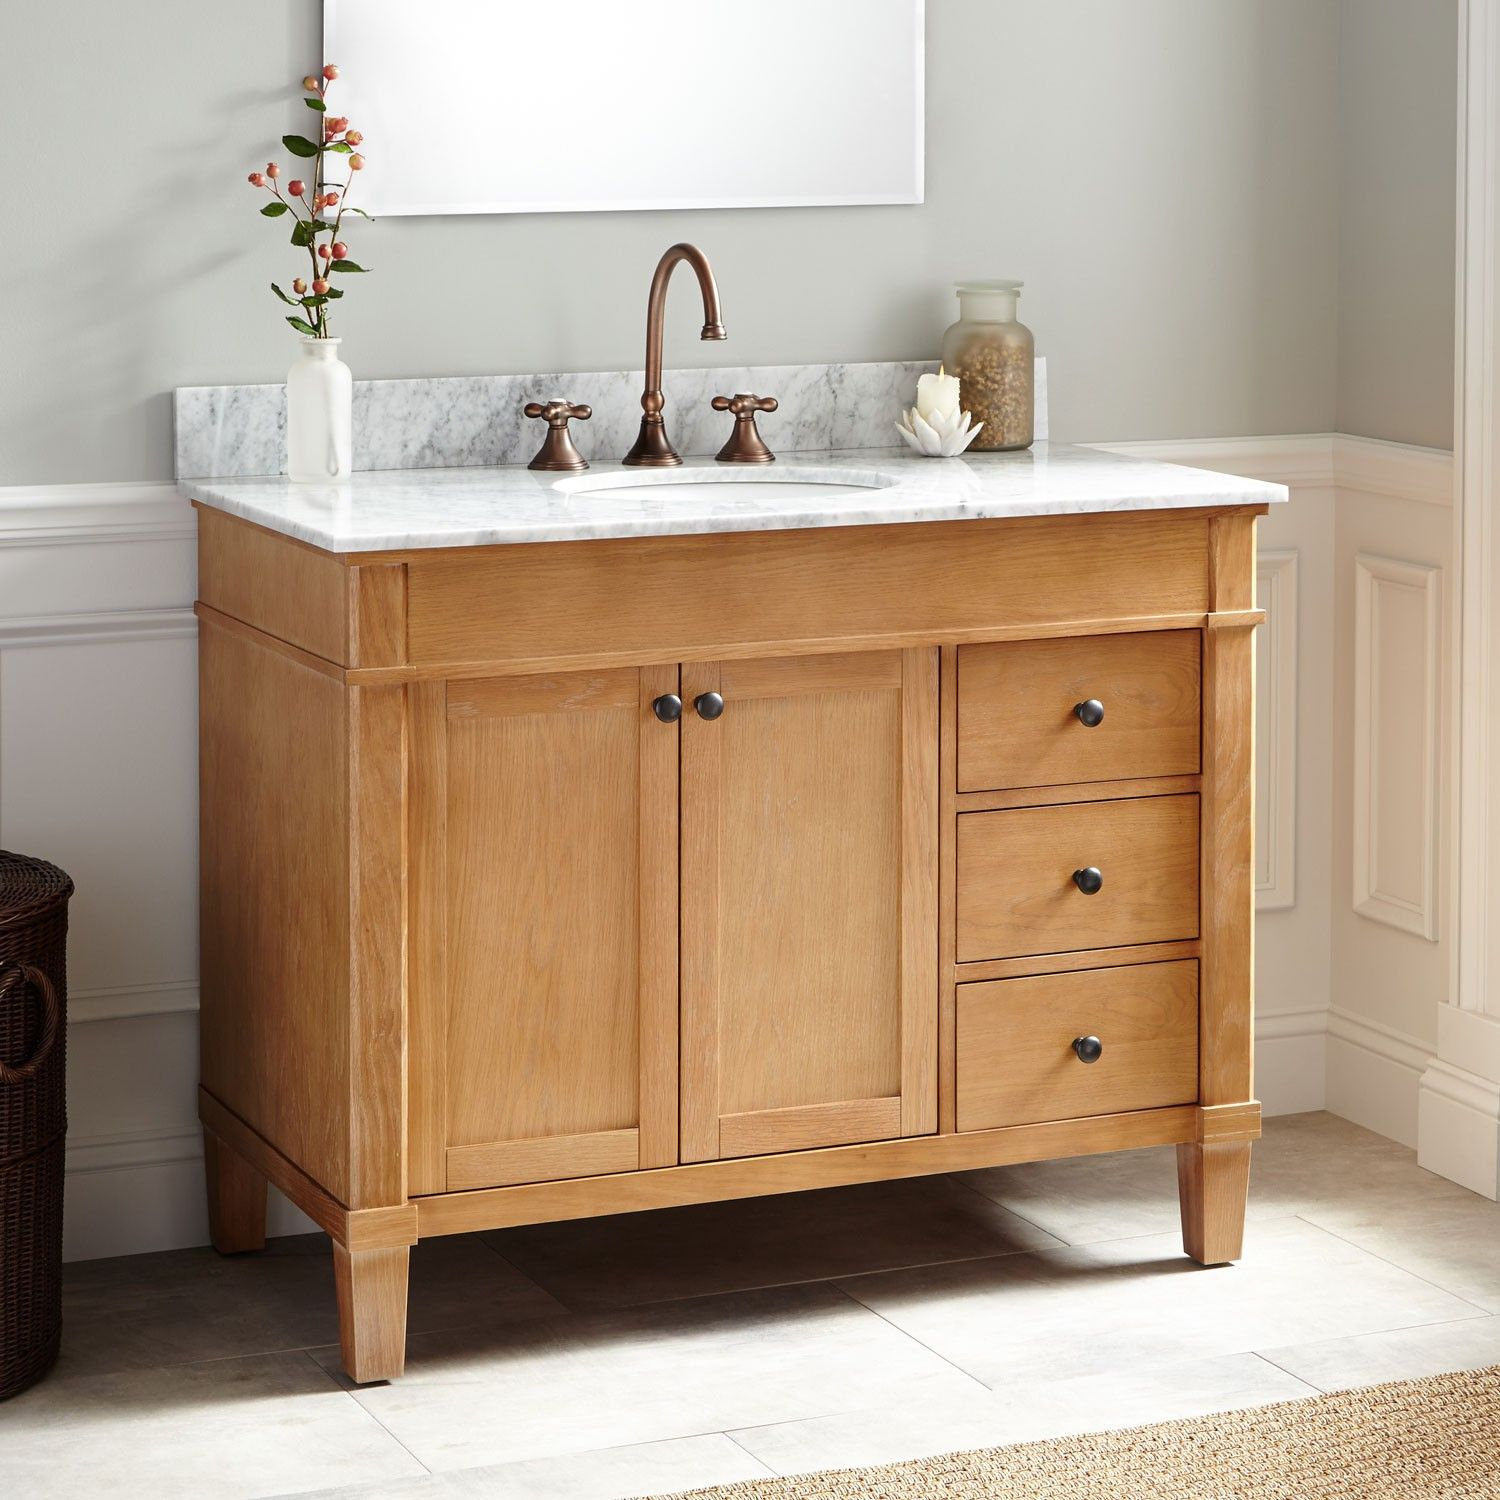 42 Marilla Oak Vanity Bathroom Vanities